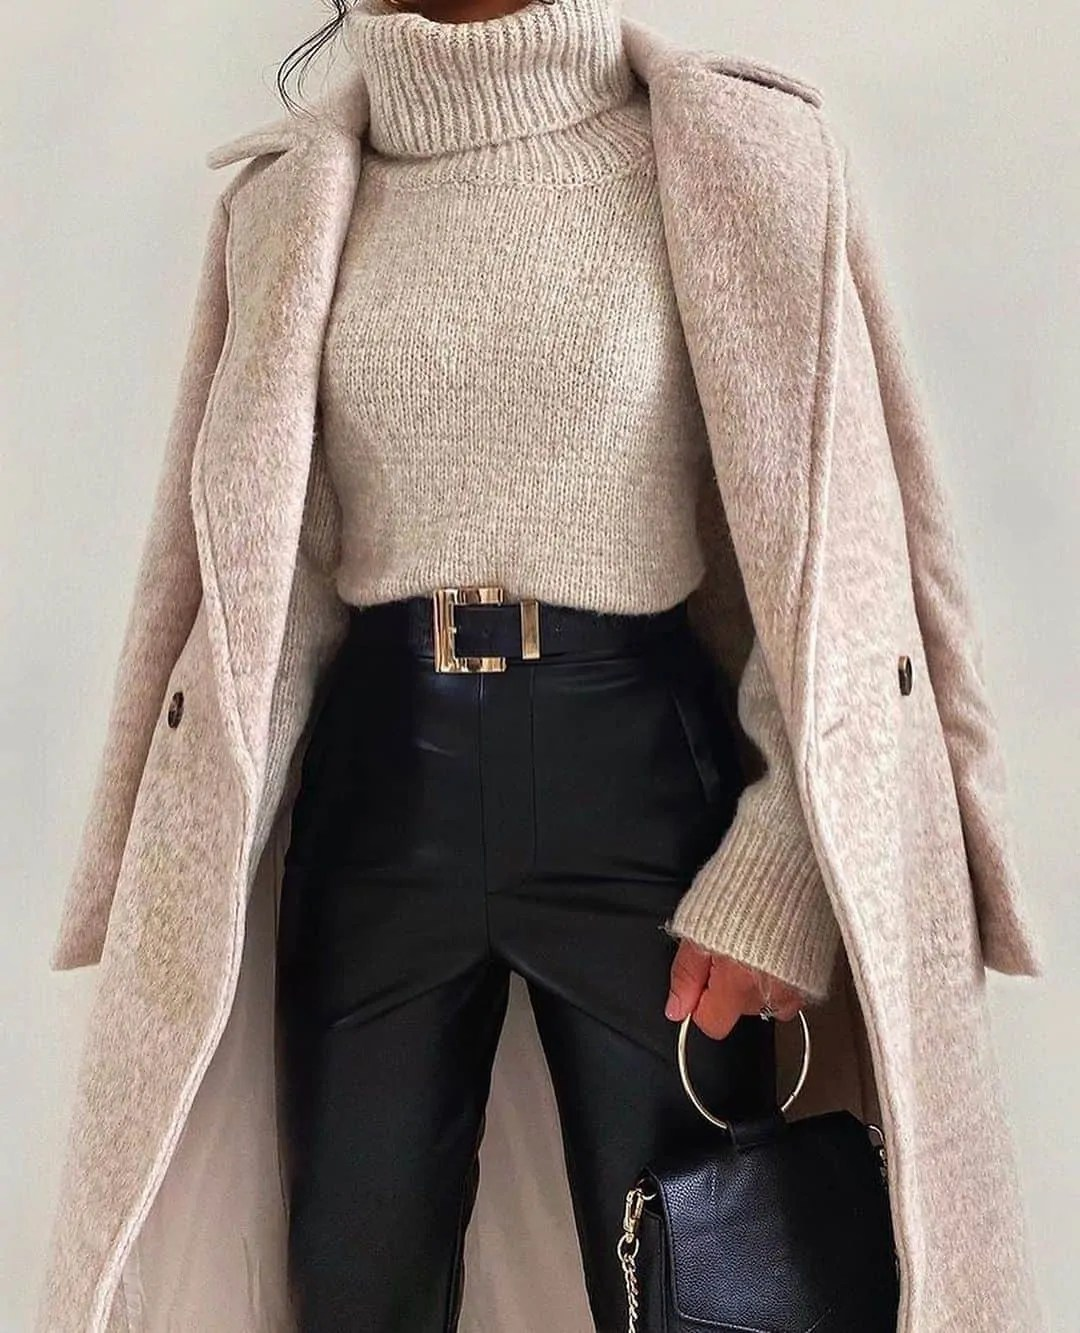 100+ fashion inspo outfits that you have to see no matter what your style is 81